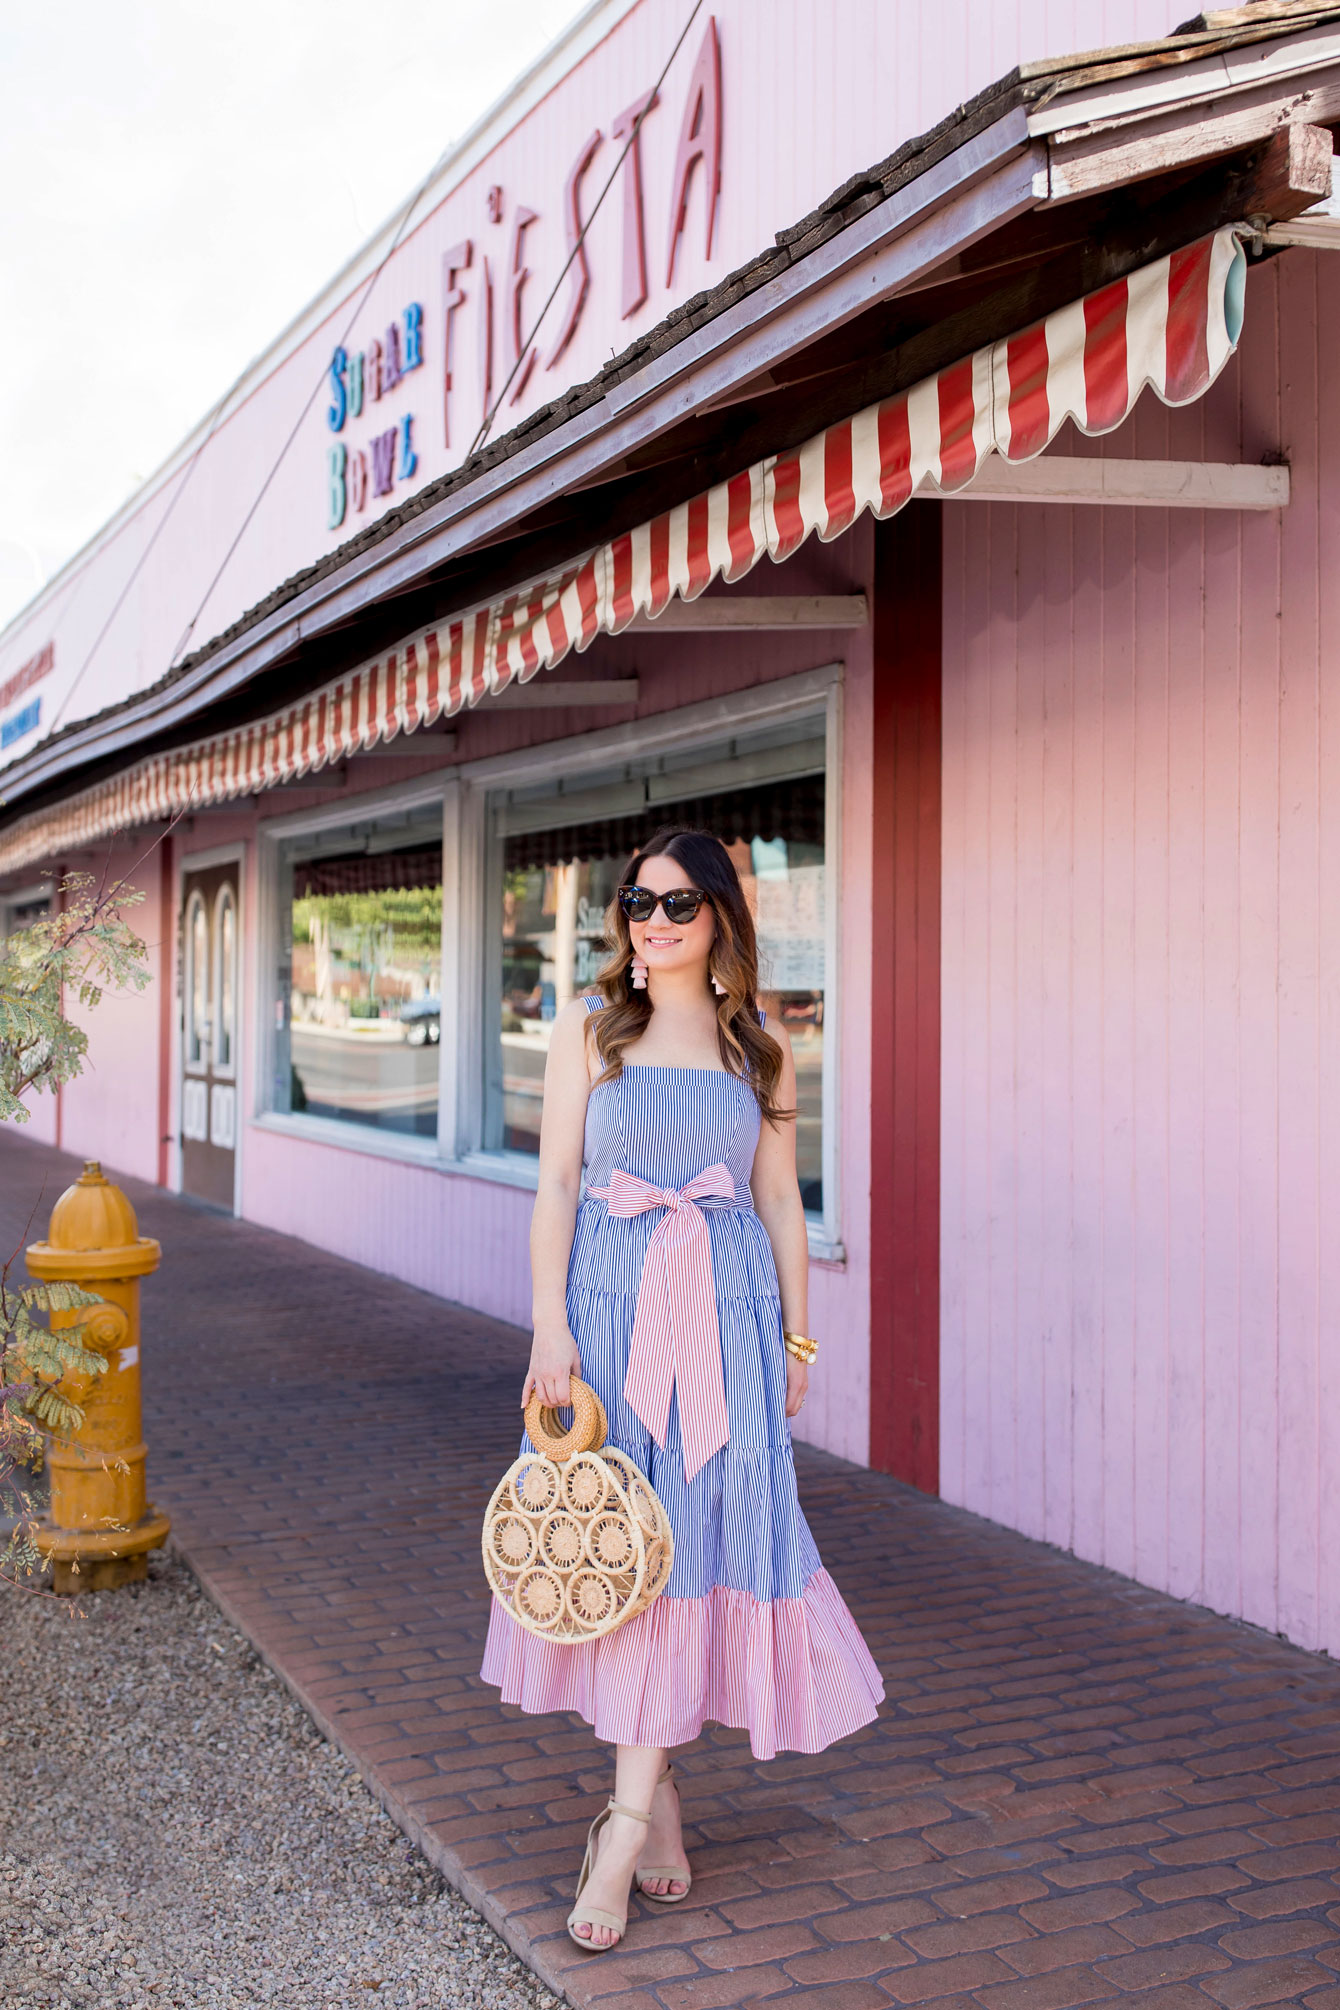 Most Instagrammable Places in Scottsdale